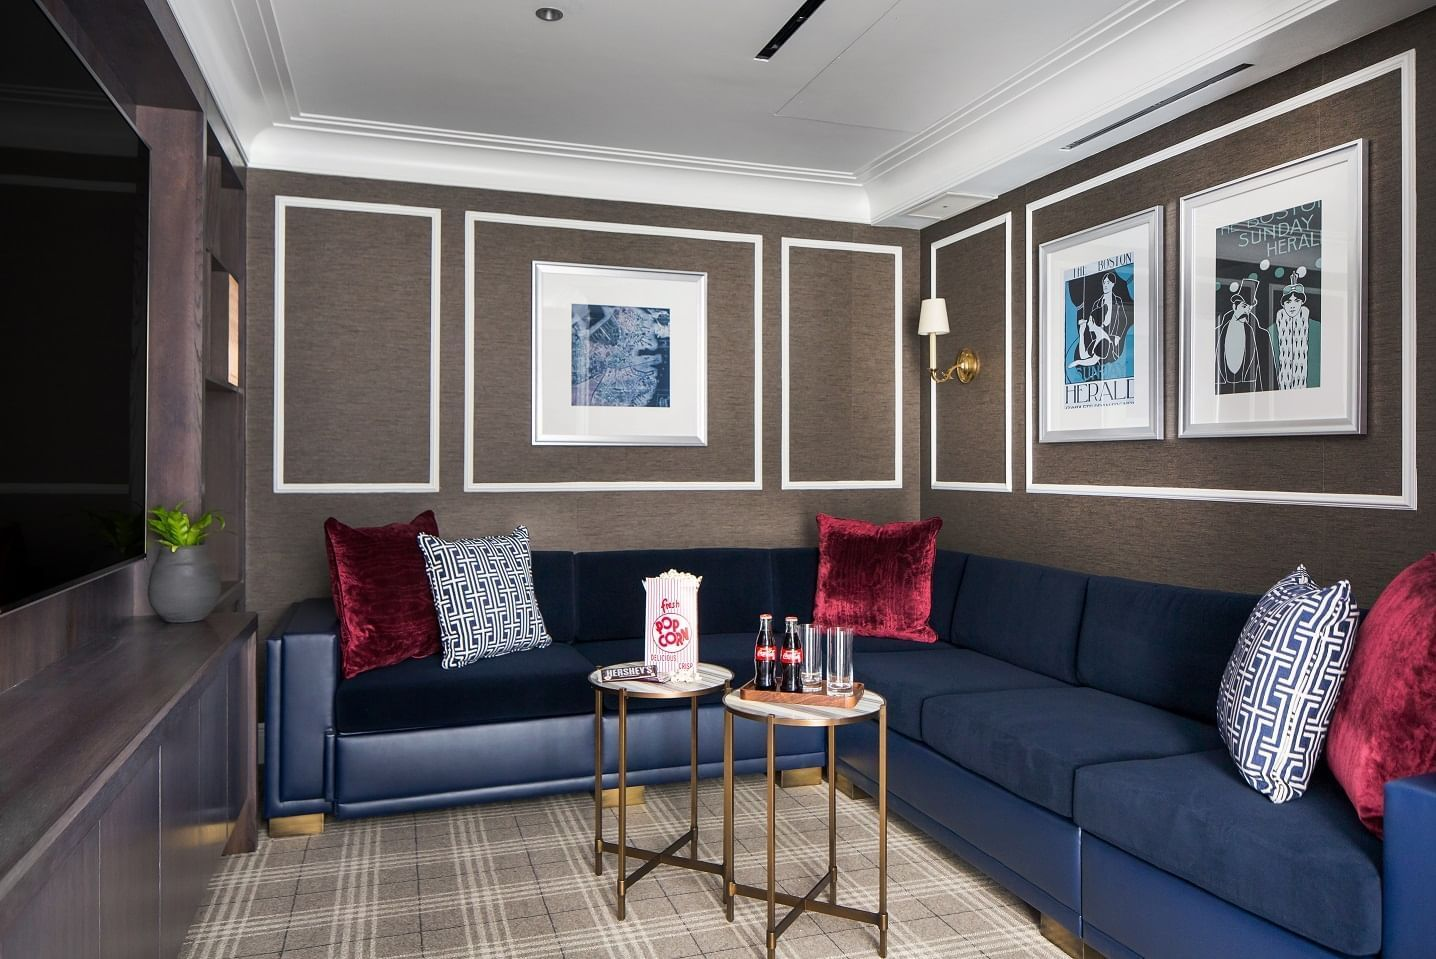 Presidential Suite's media room with couches